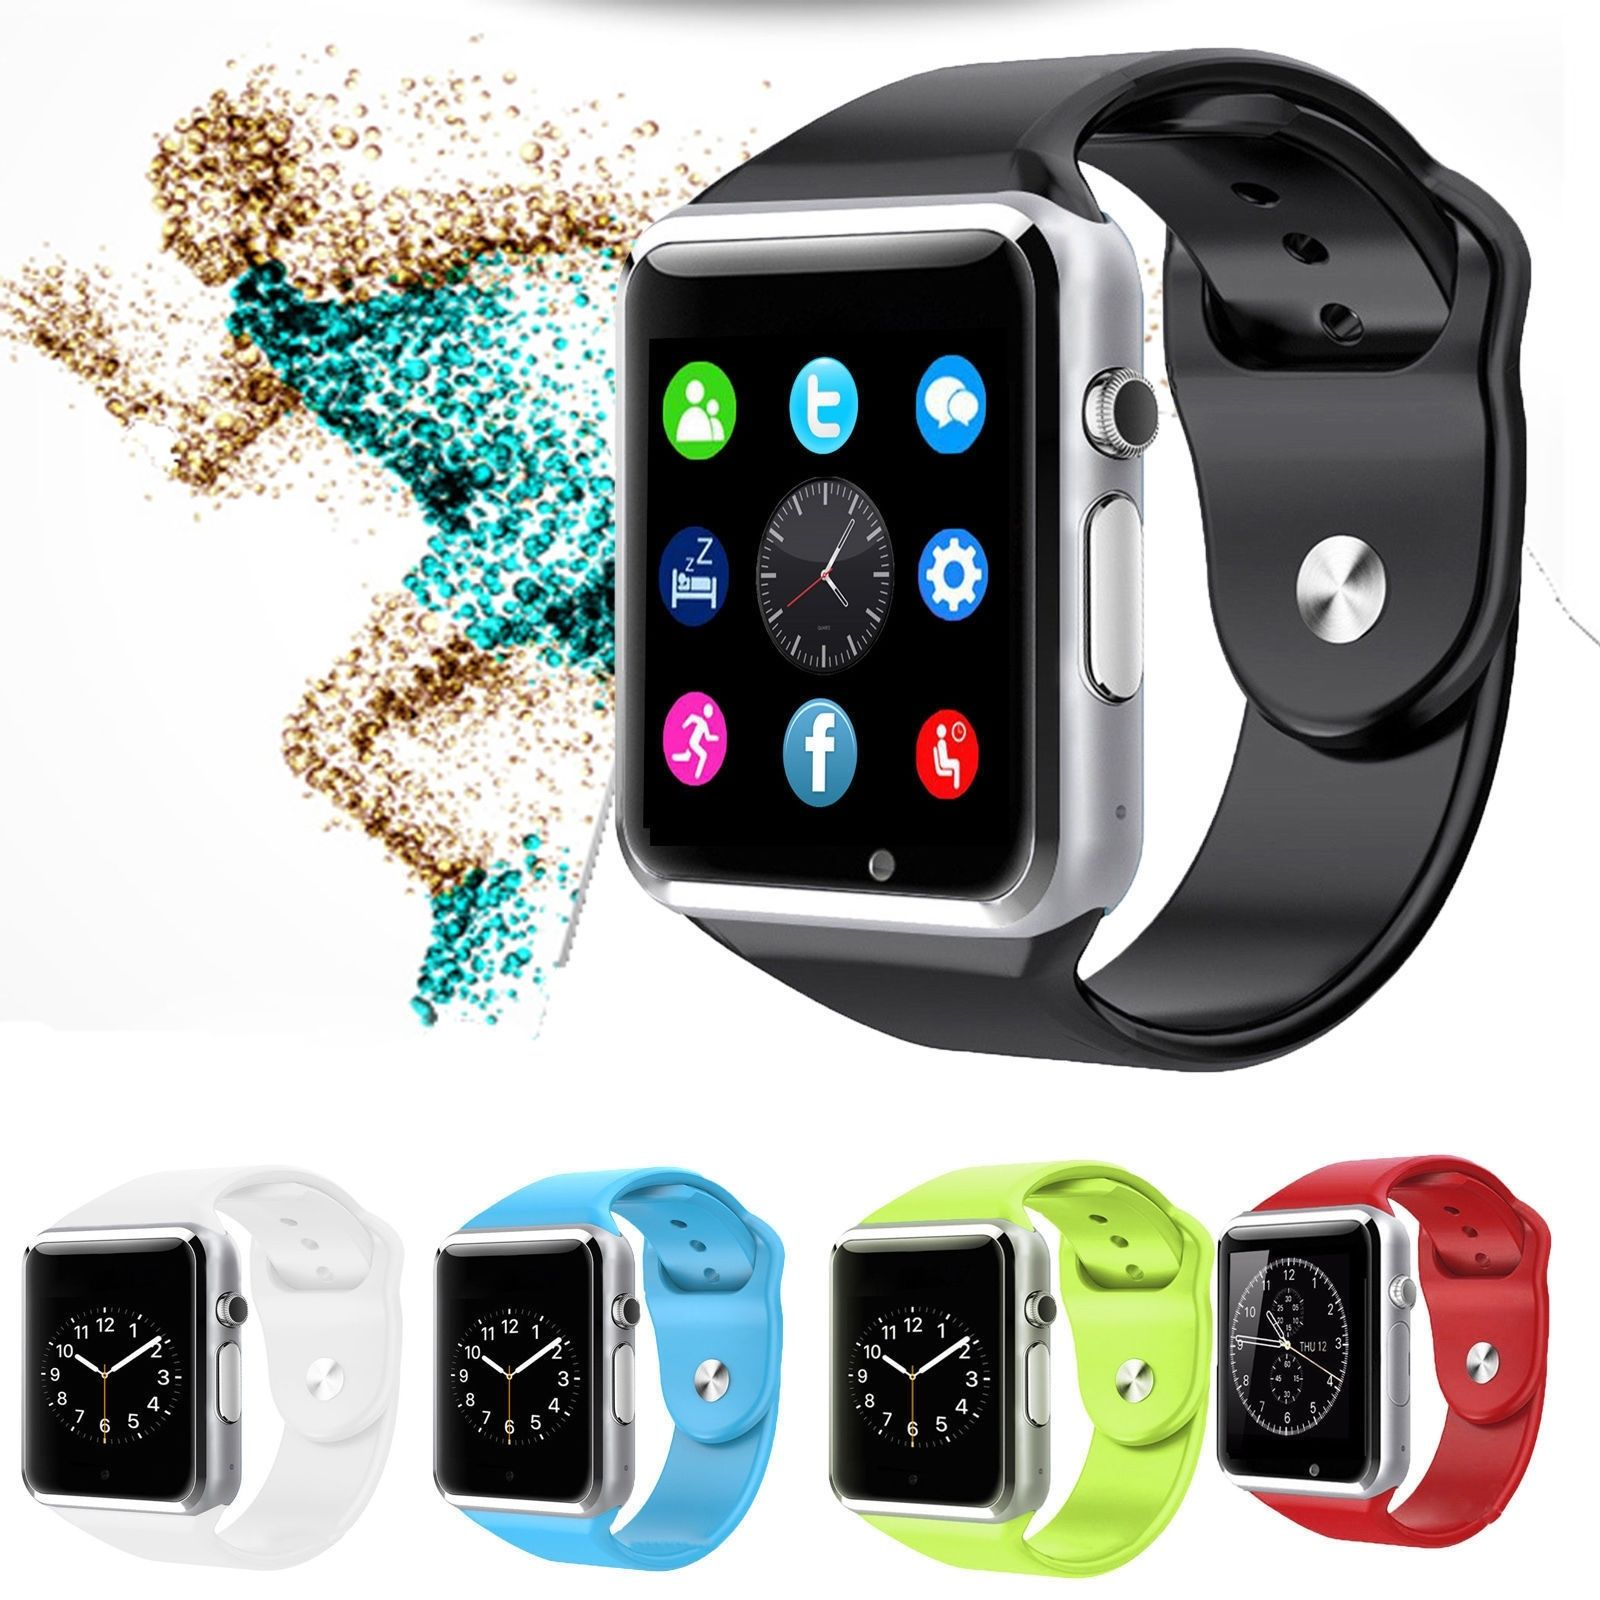 Tagital T1 Bluetooth Smart Watch Wrist Watch with Camera For Android IOS Smart Phone Samsung S5 / Note 2 / 3 / 4, Nexus 6, HTC, Sony, Huawei and Other Android Smart Phones